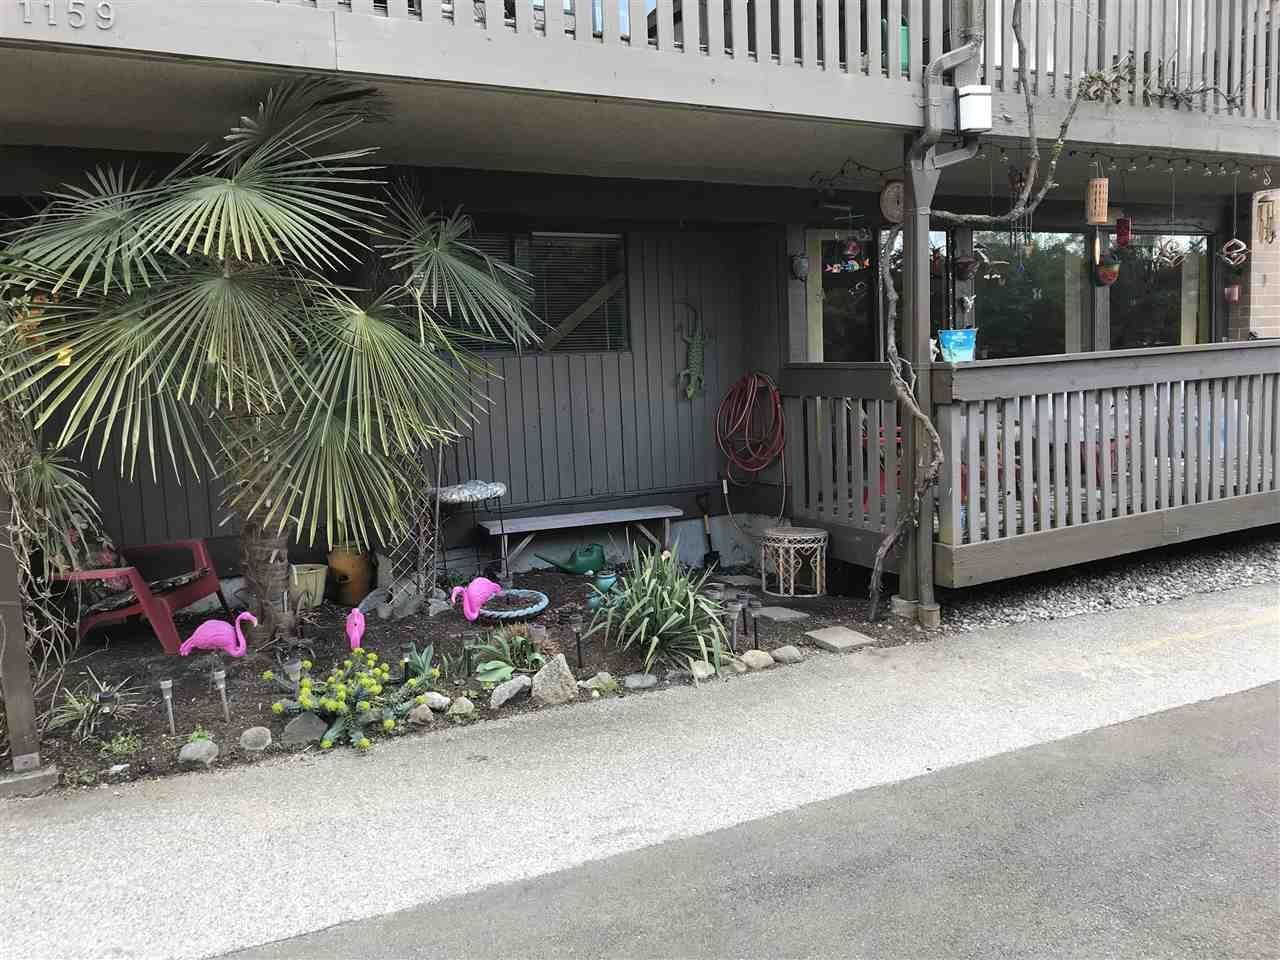 """Main Photo: 1153 LILLOOET Road in North Vancouver: Lynnmour Condo for sale in """"Lynnmour West"""" : MLS®# R2252270"""